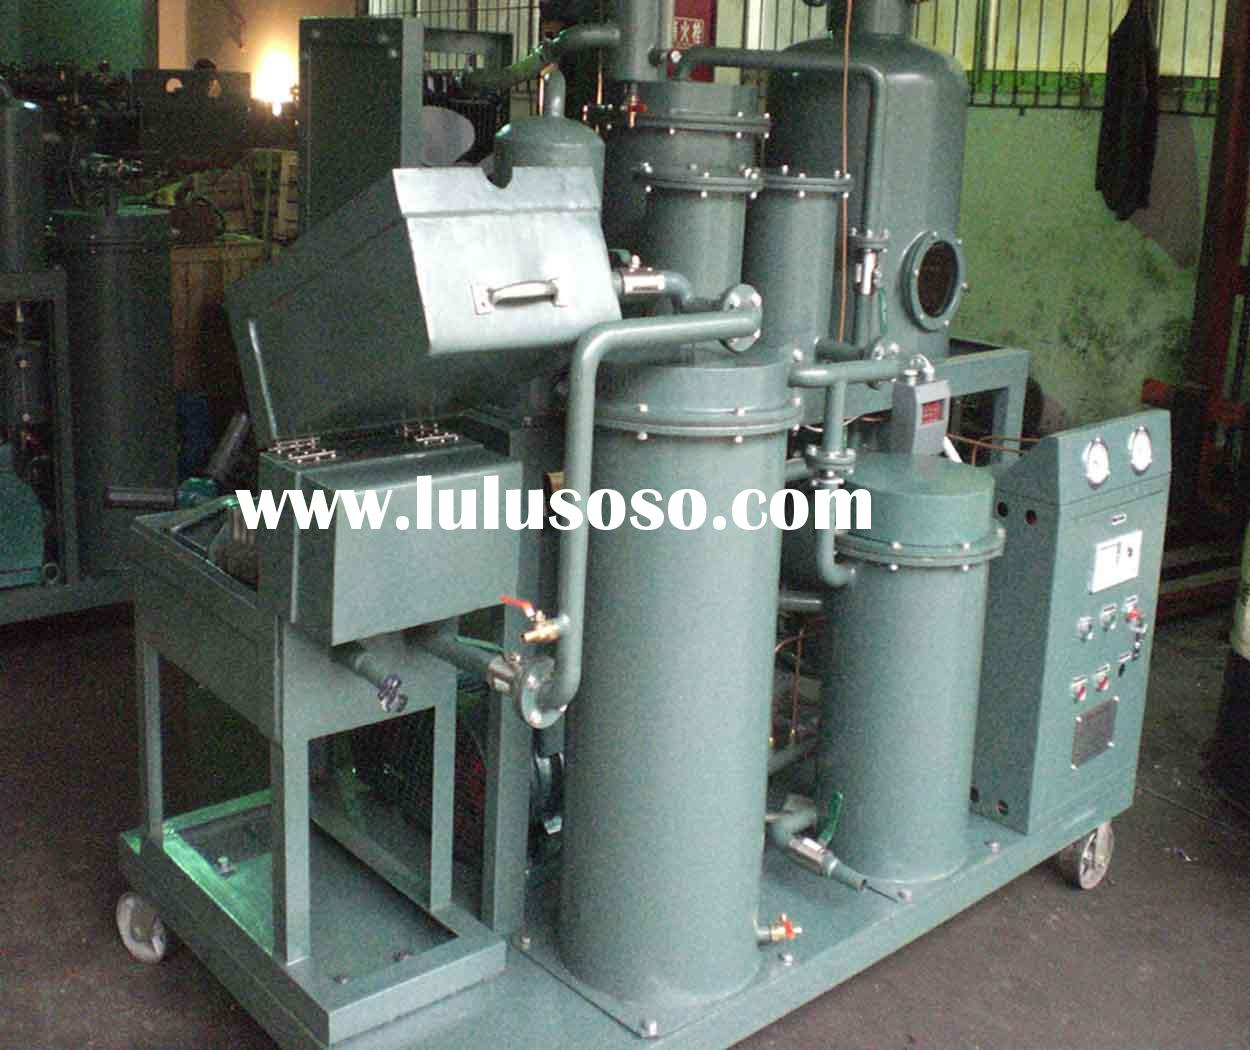 vegetable oil filtration system, cooking oil recycling